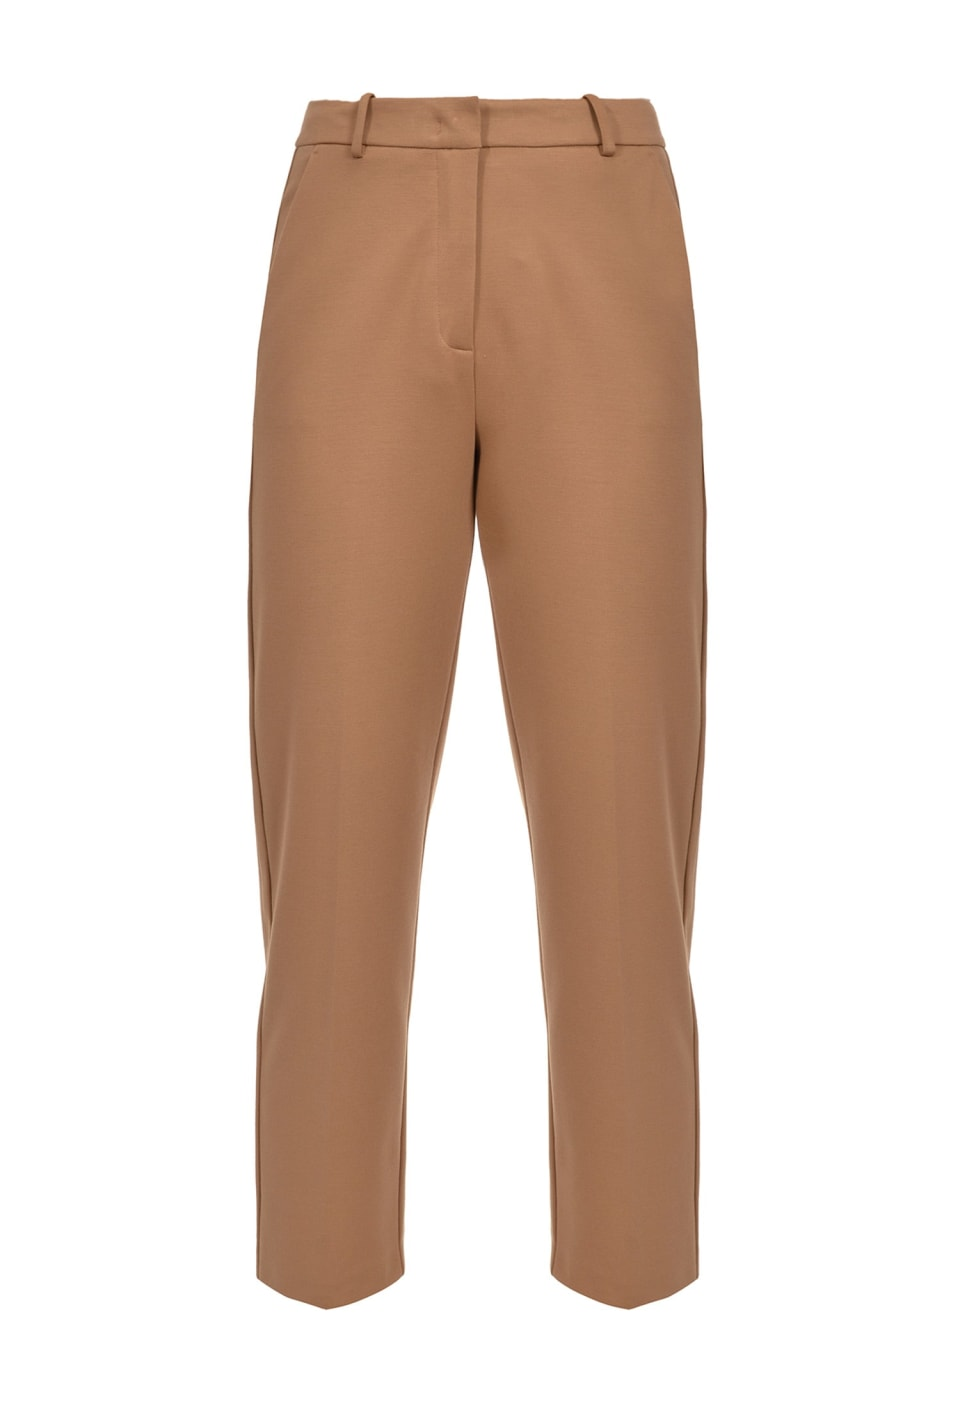 Pantalon au point de Rome - Pinko